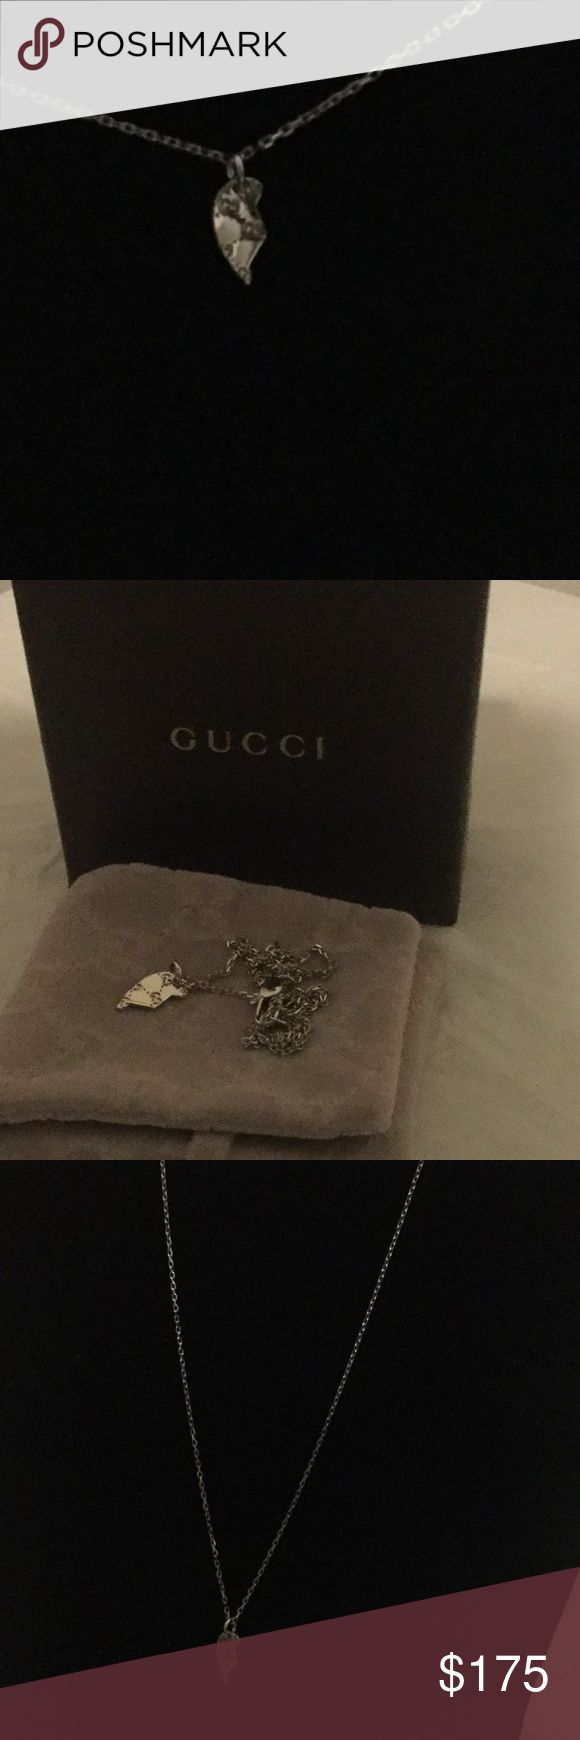 """Gucci 18kt White Gold Split Heart Necklace Chain lengths adjust from 15"""" to 16"""" with lobster clasp. Gucci Jewelry Necklaces"""